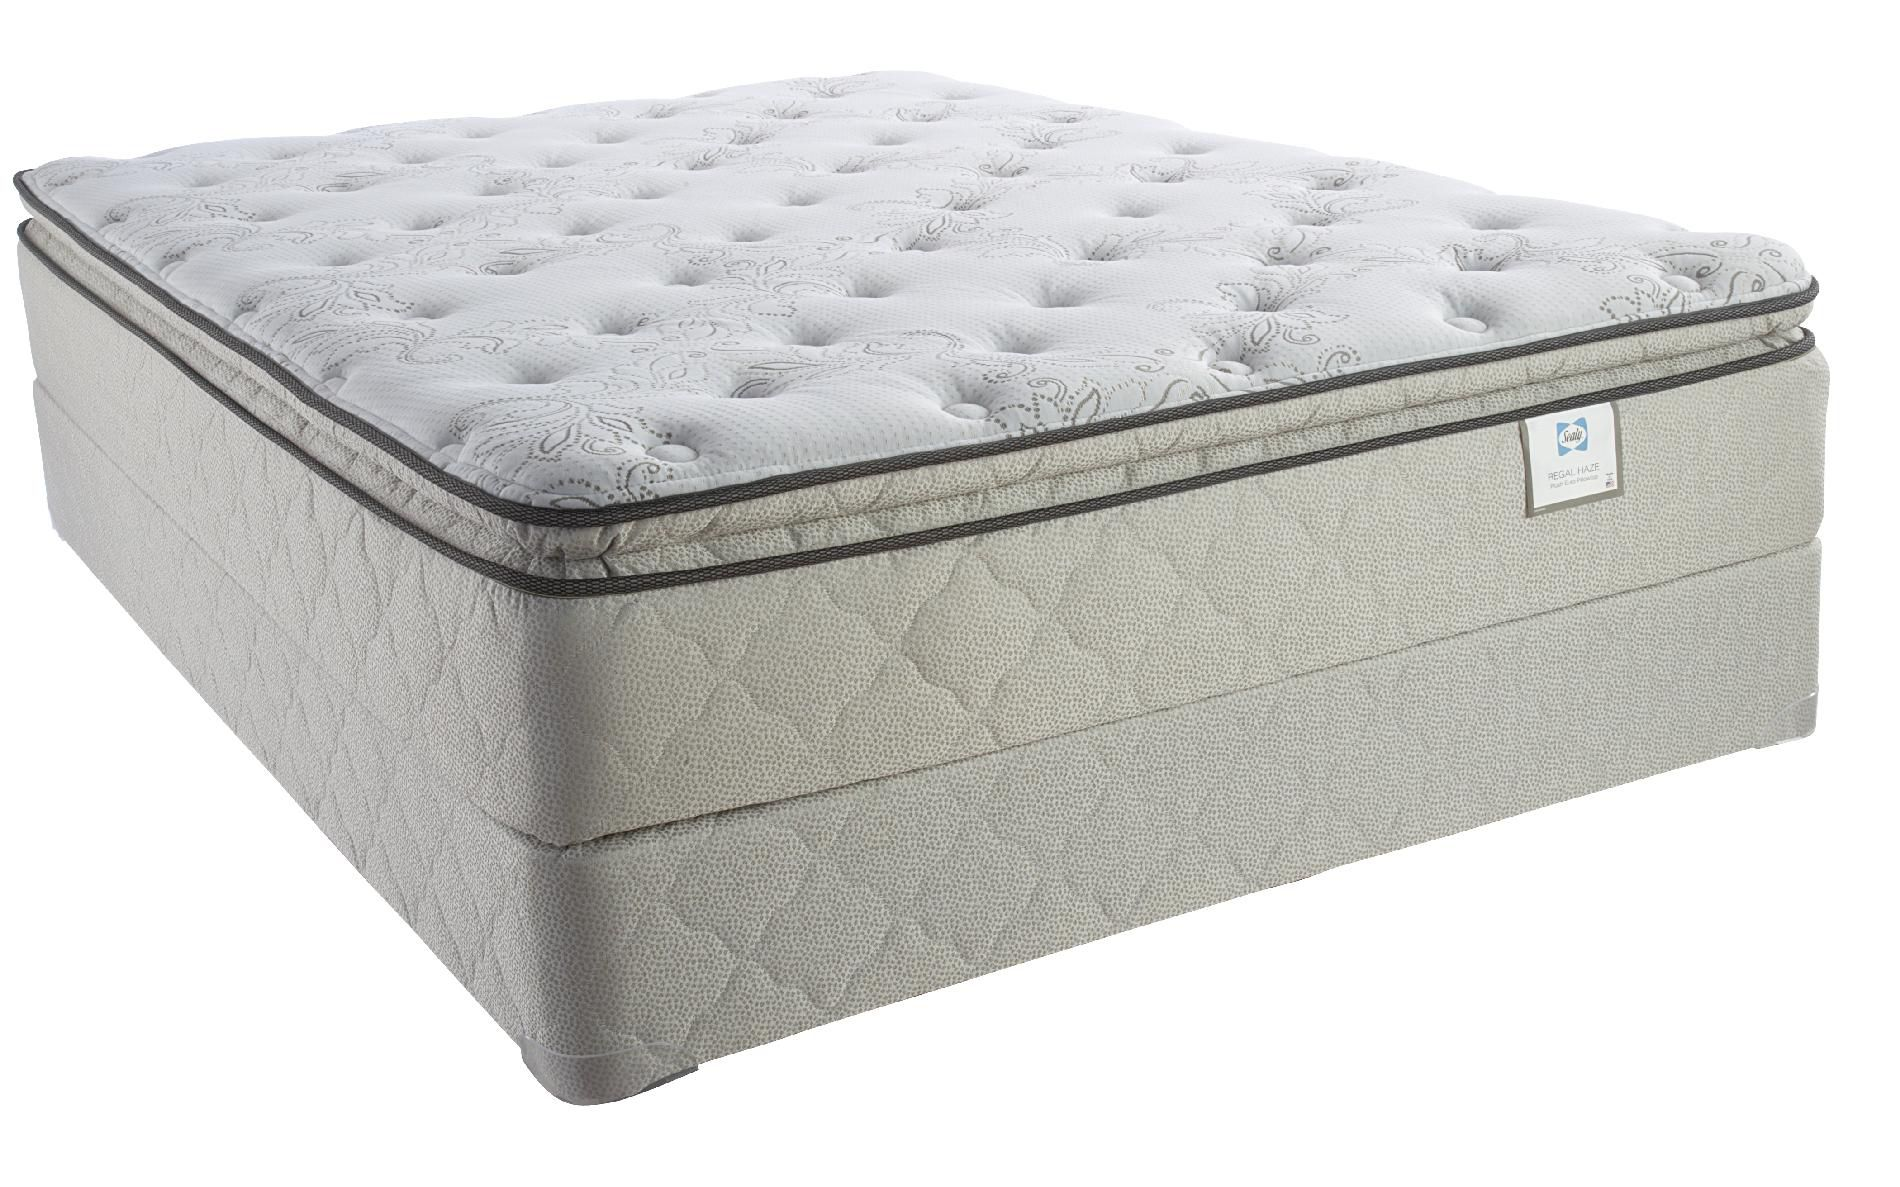 Concord-Select-Plush-Euro-Pillowtop-Queen-Mattress-Only